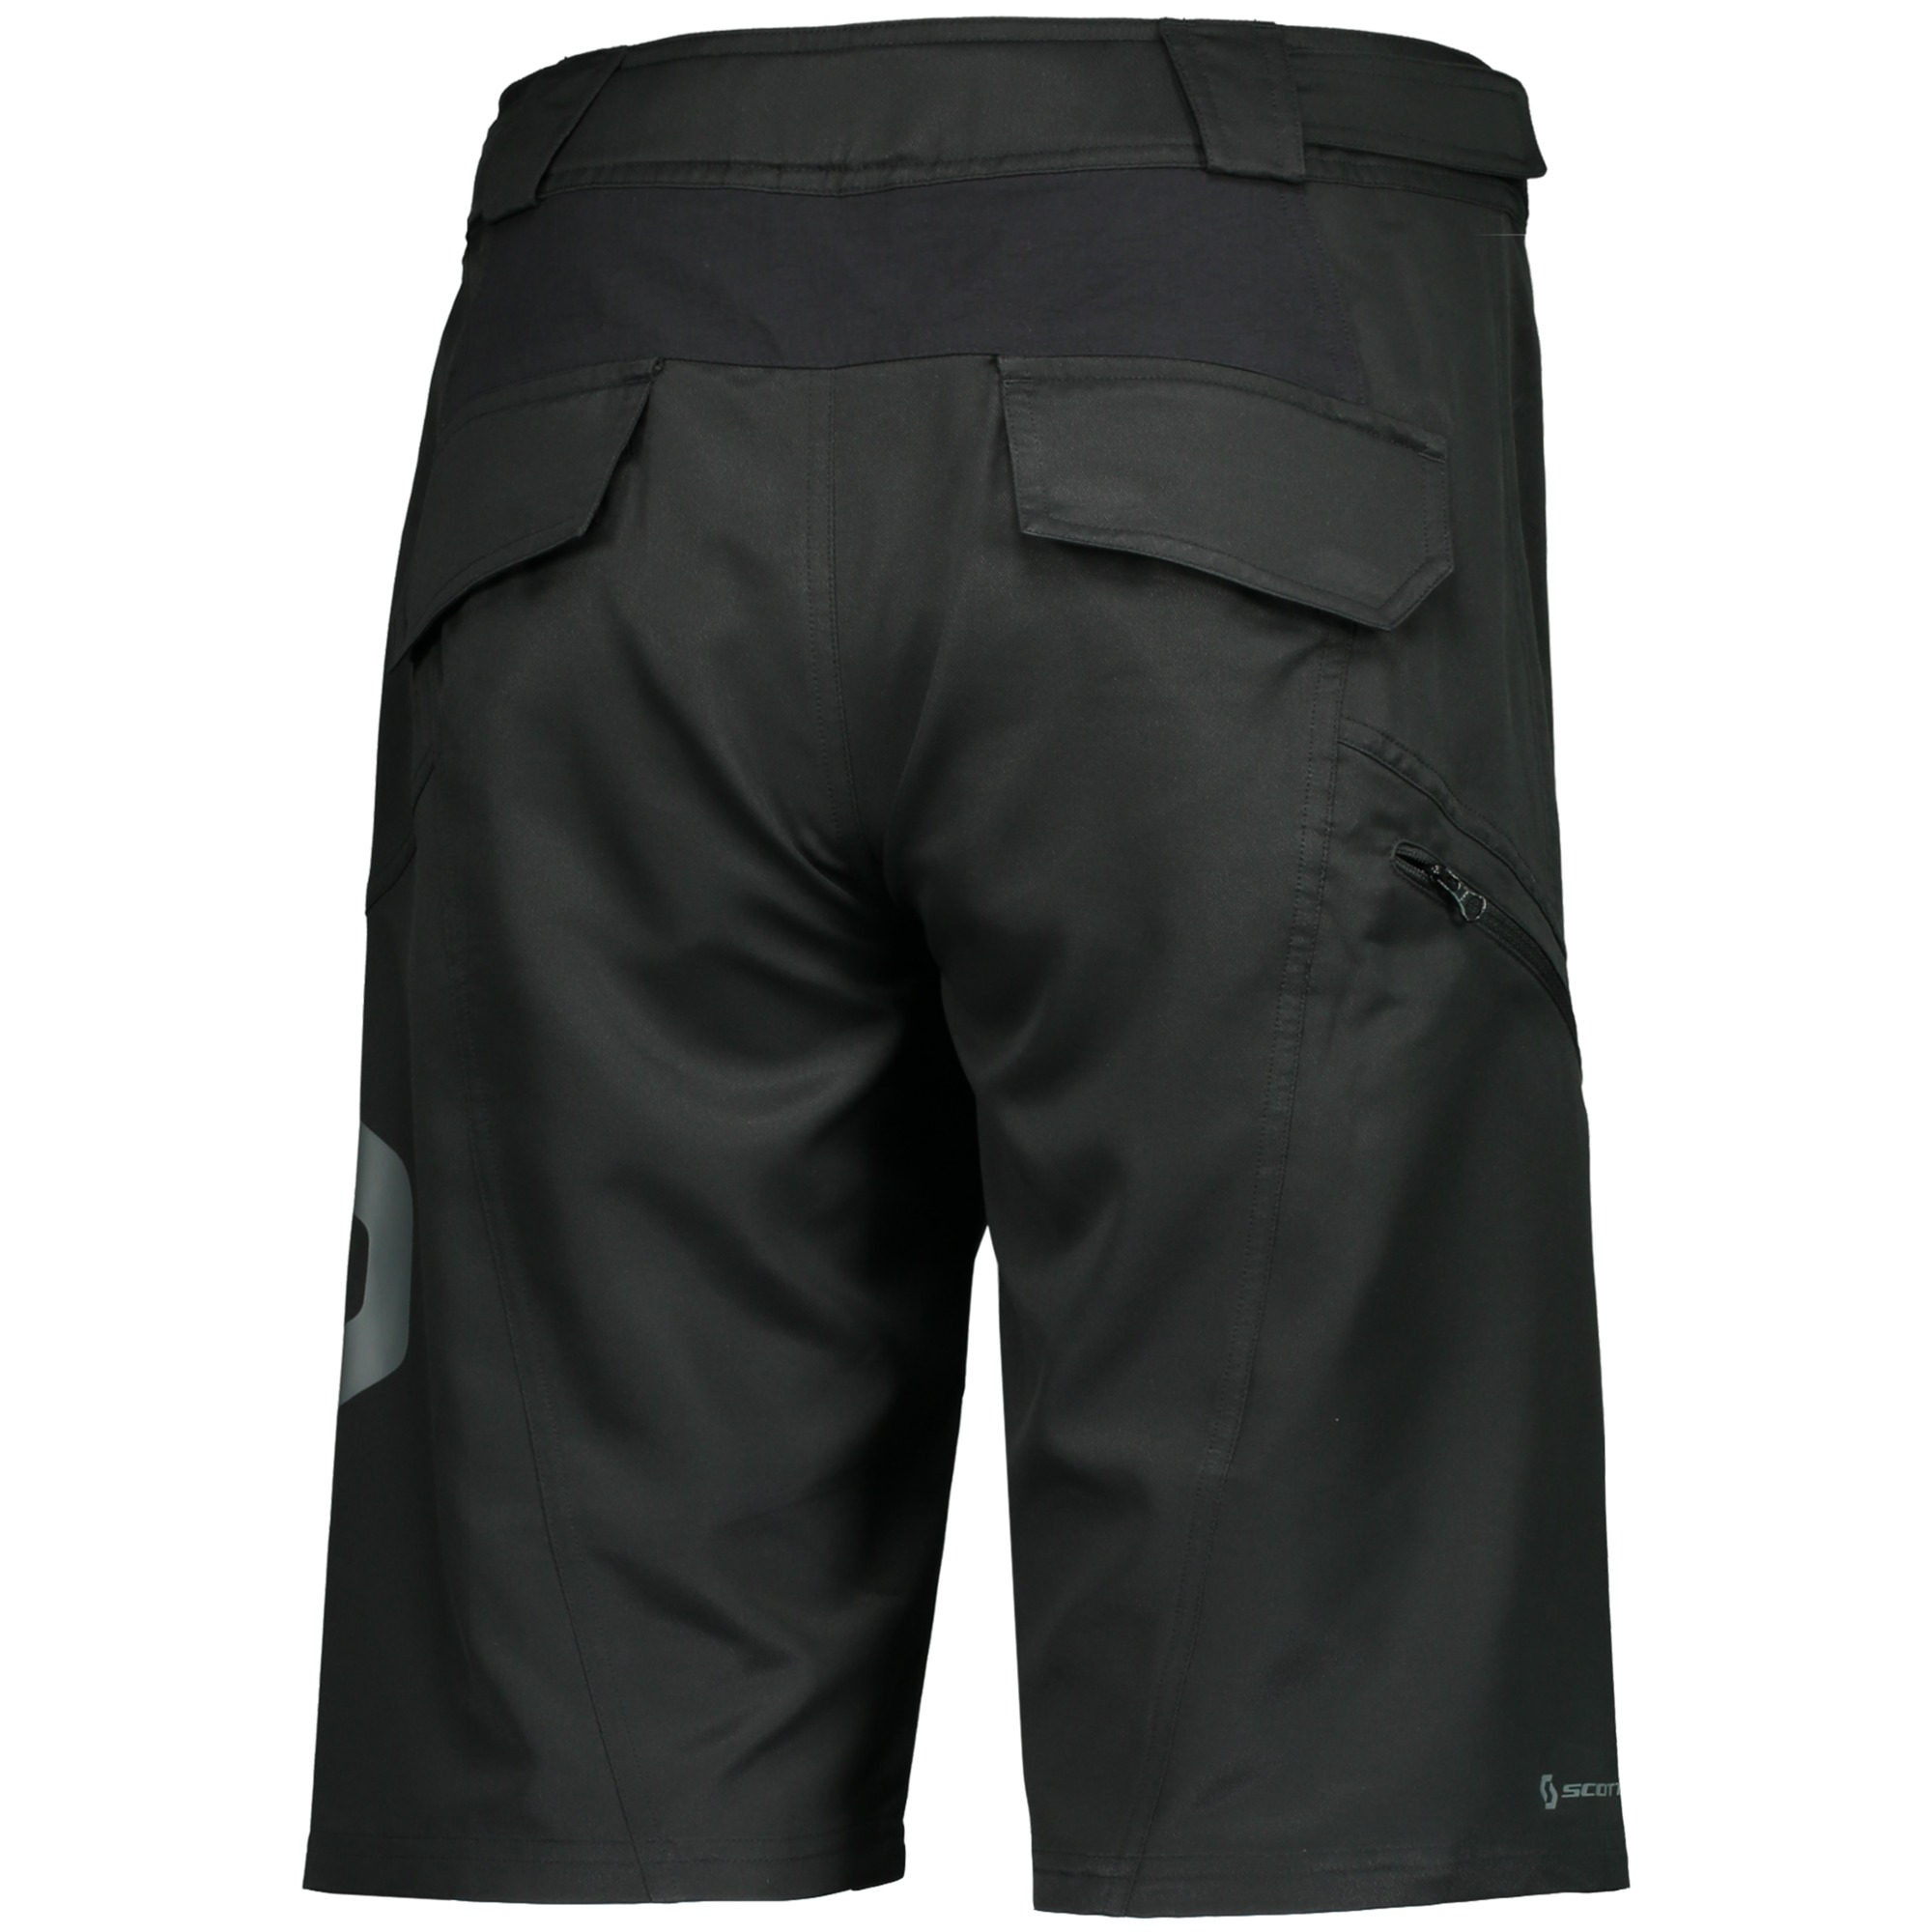 SCOTT Trail 40 ls/fit w/pad Shorts